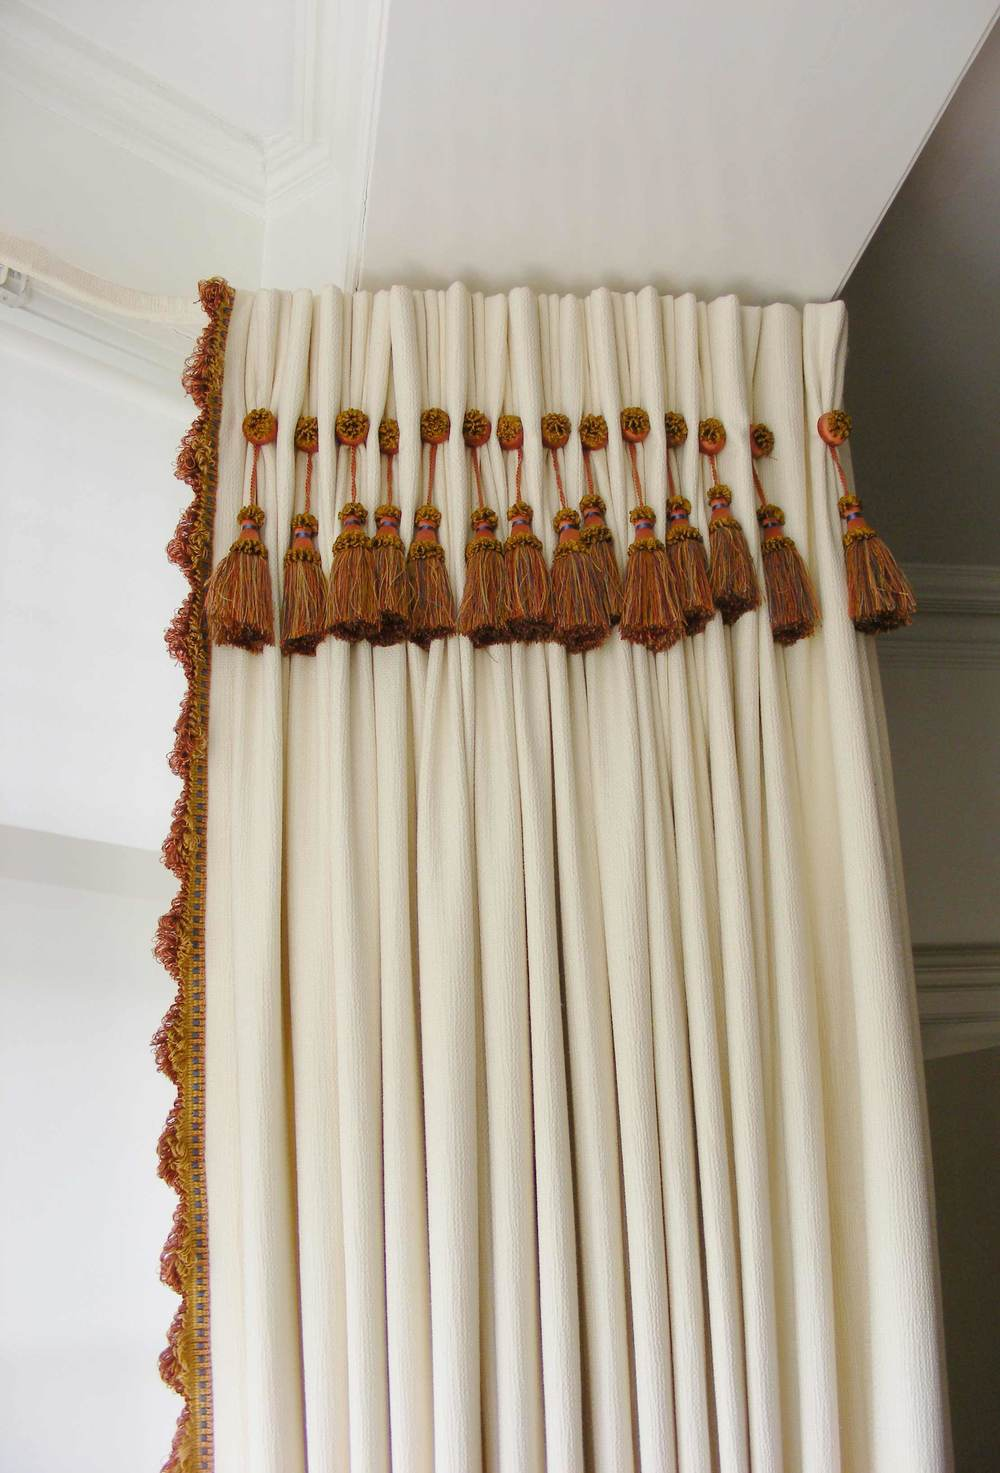 Fringe curtain on pullyrail